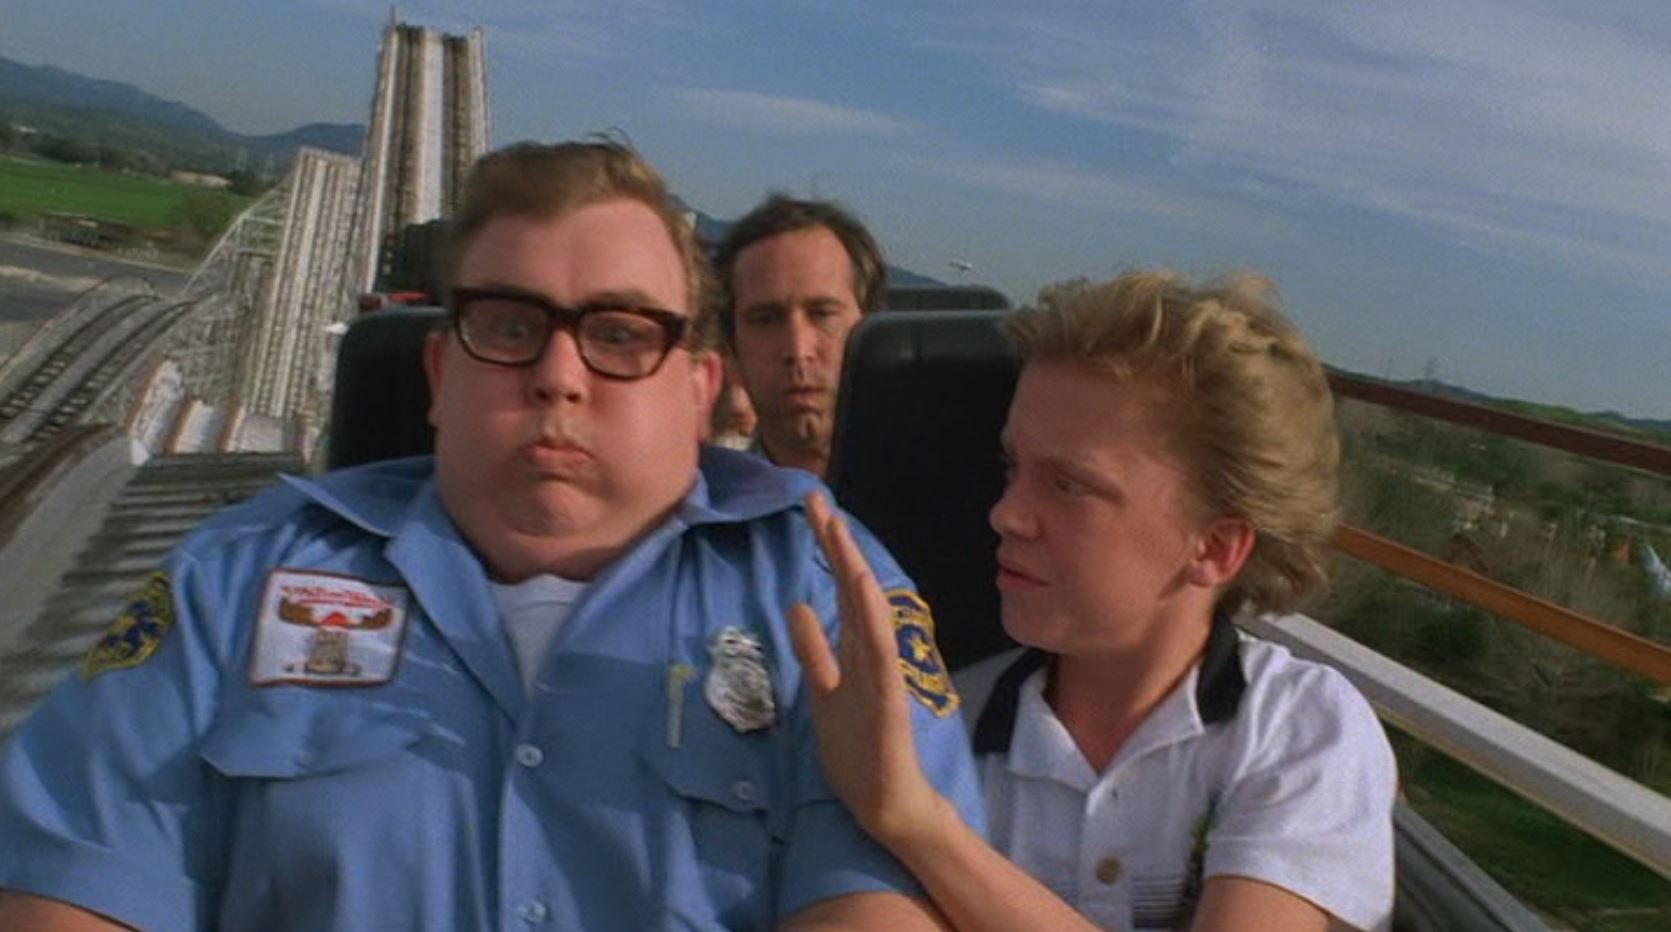 23 8 40 Things You Probably Didn't Know About John Candy